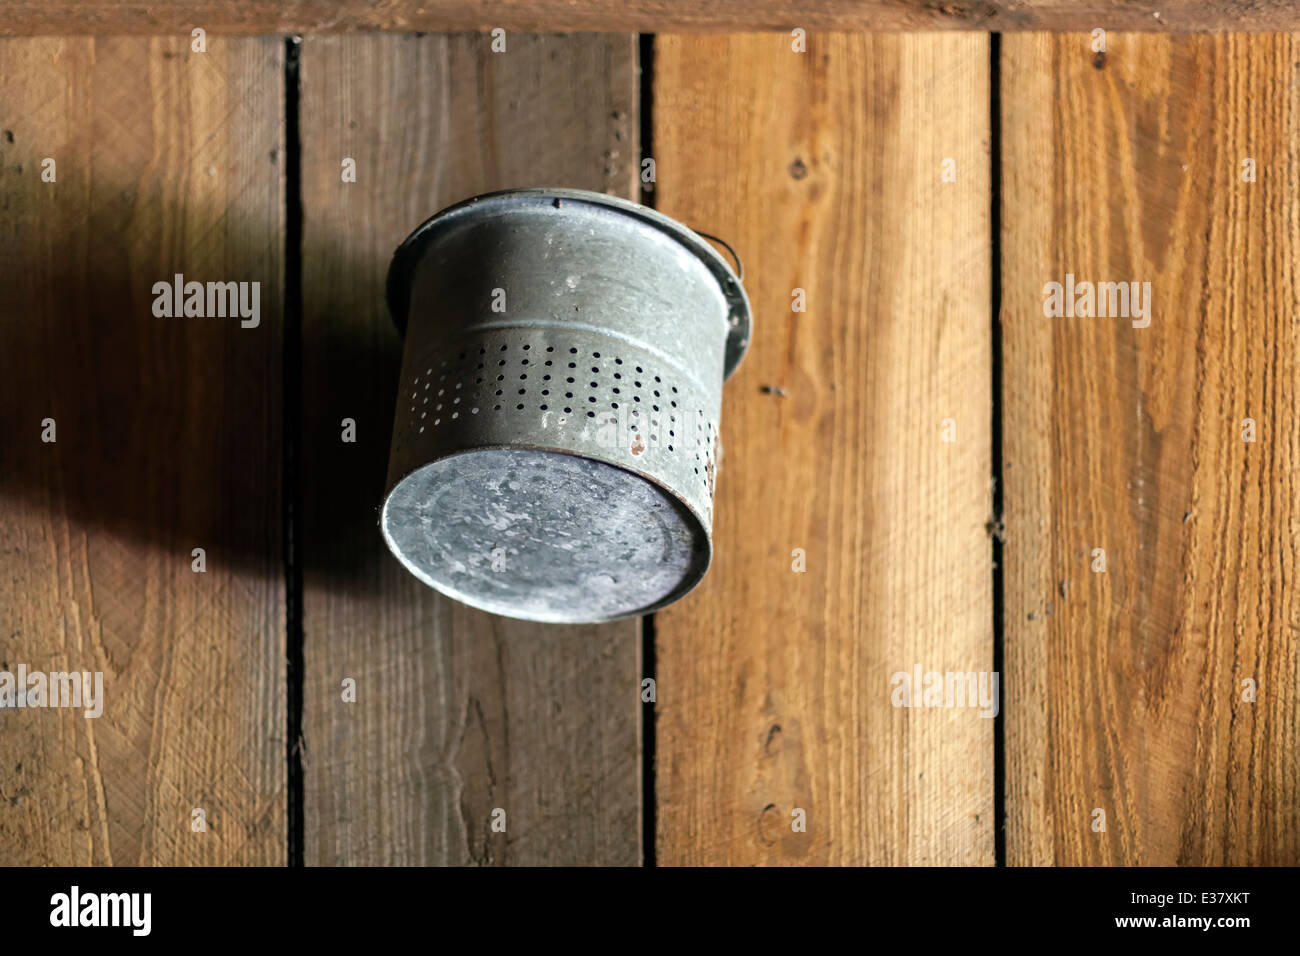 Old galvanized steel bucket or pail hanging on the wooden wall of an old barn. USA - Stock Image